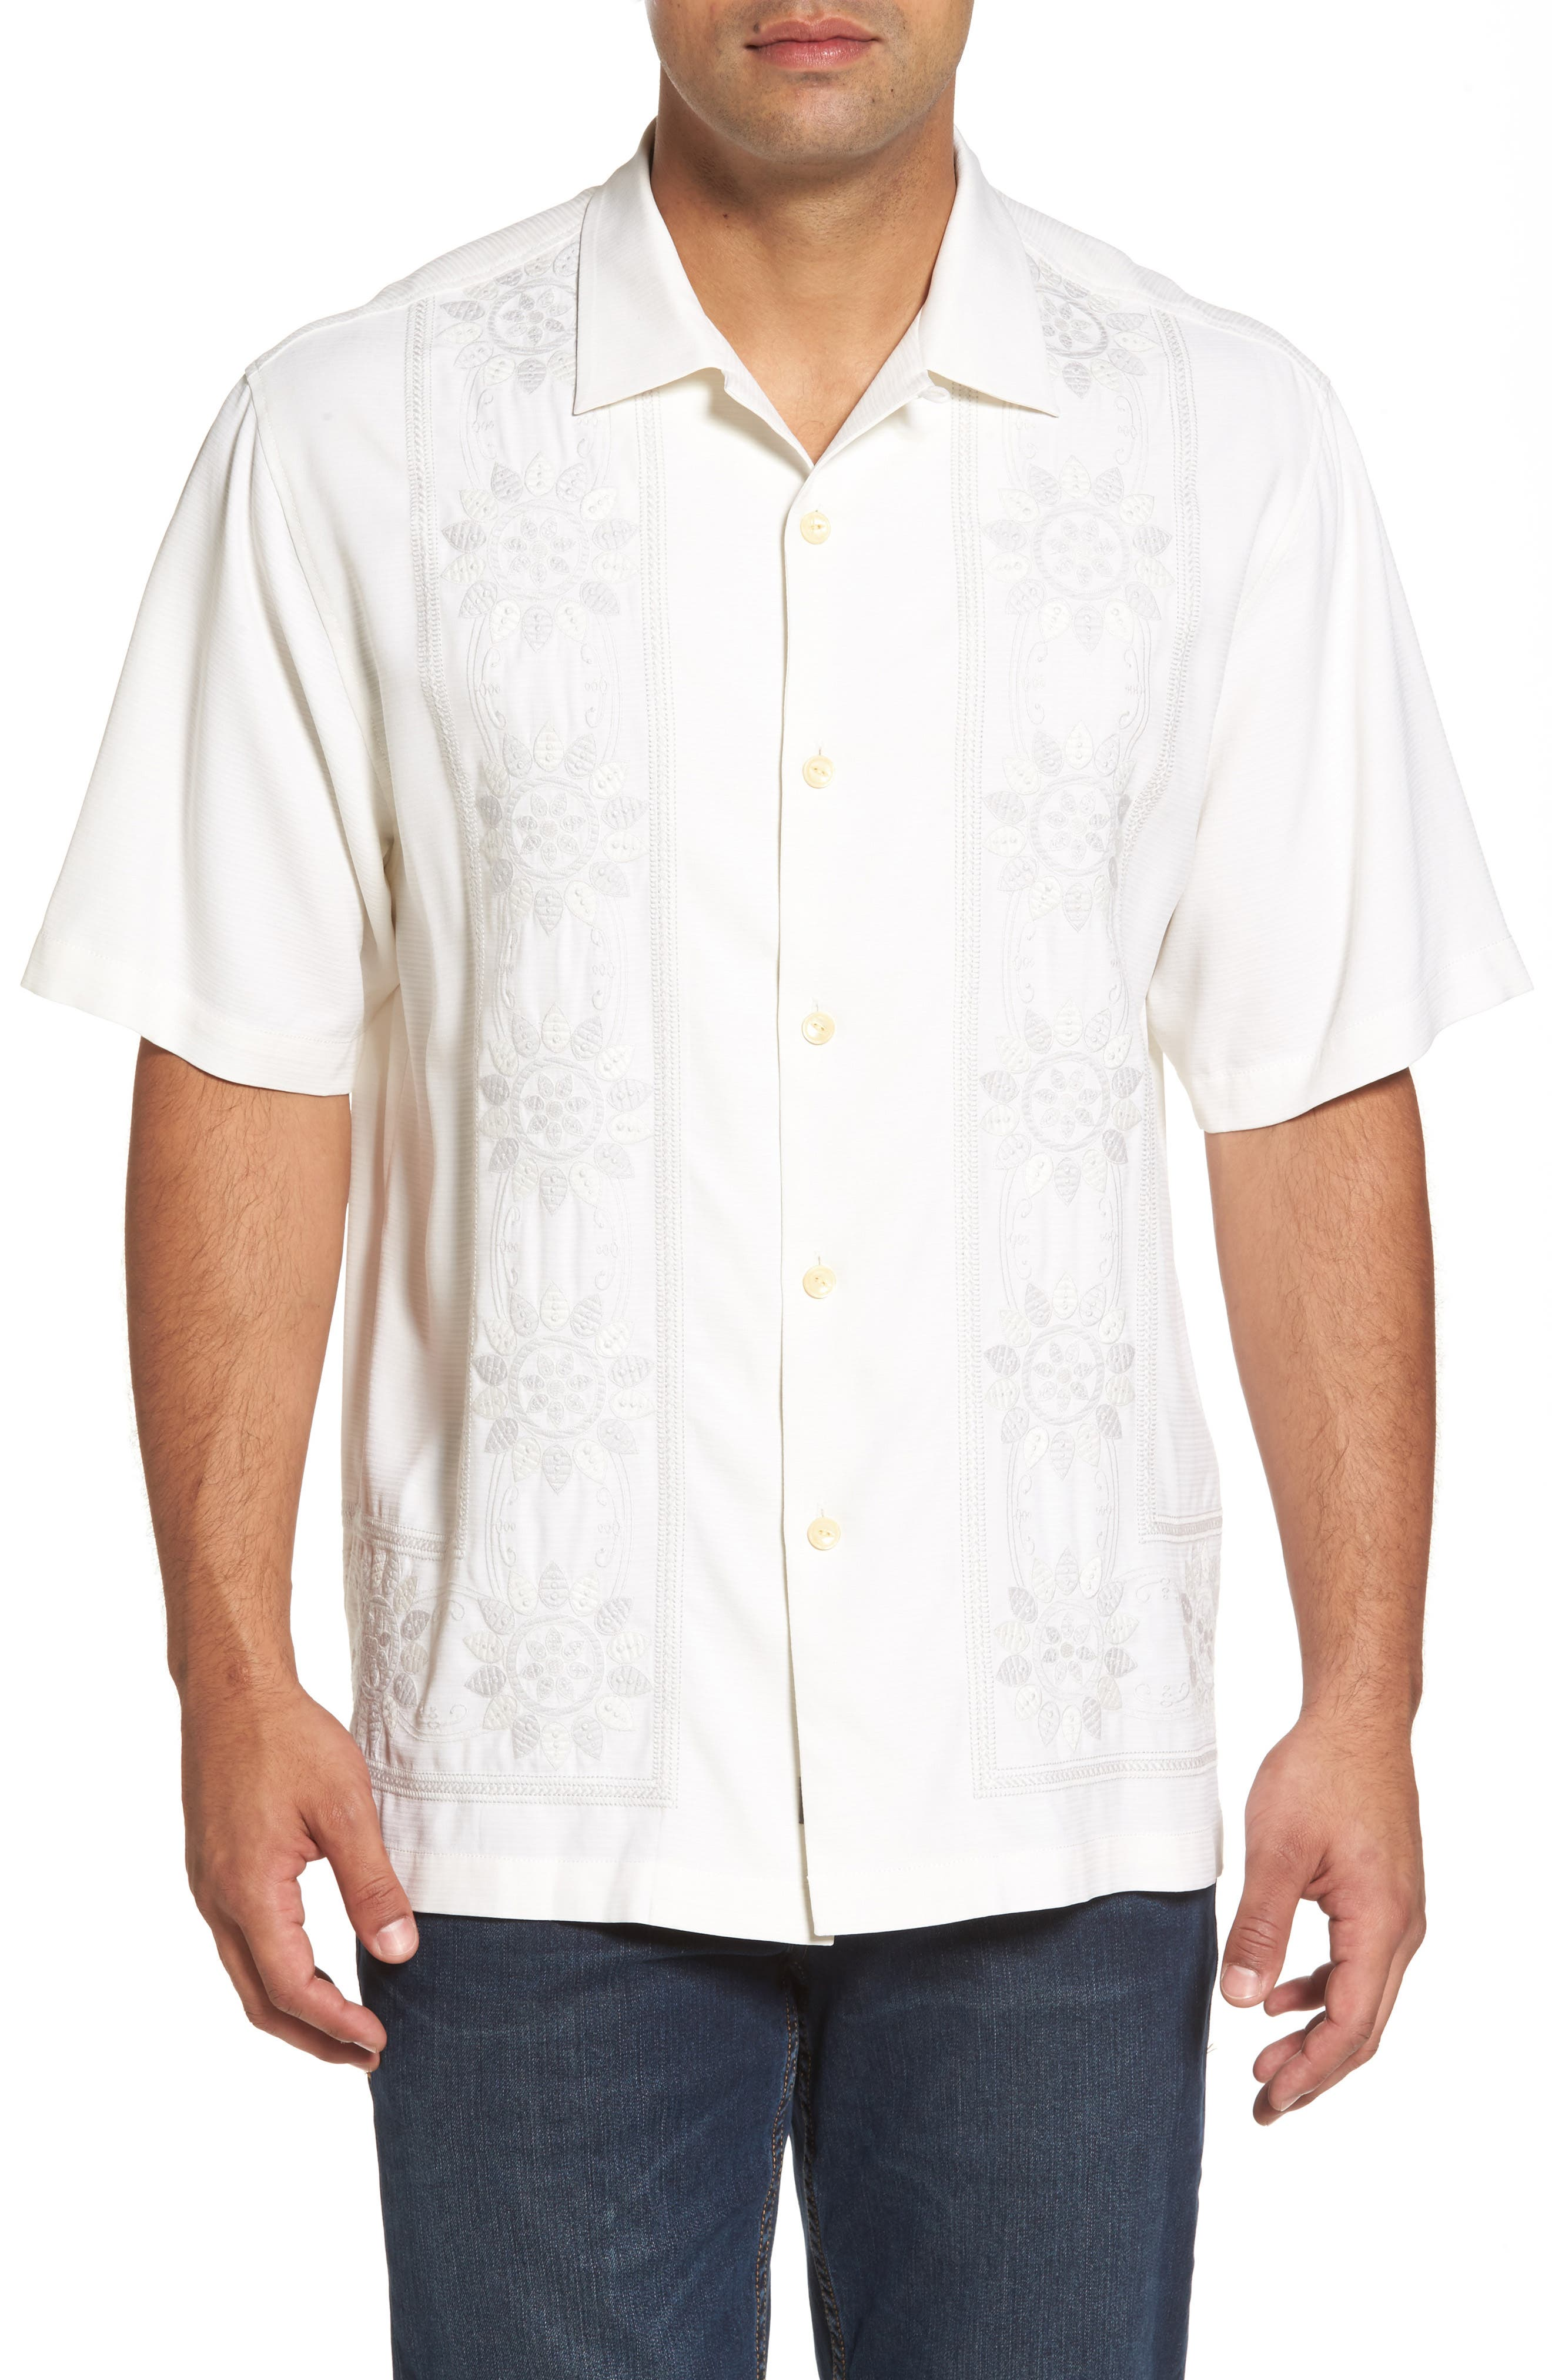 Tangier Tiles Embroidered Silk Woven Shirt,                         Main,                         color, Coconut Cream